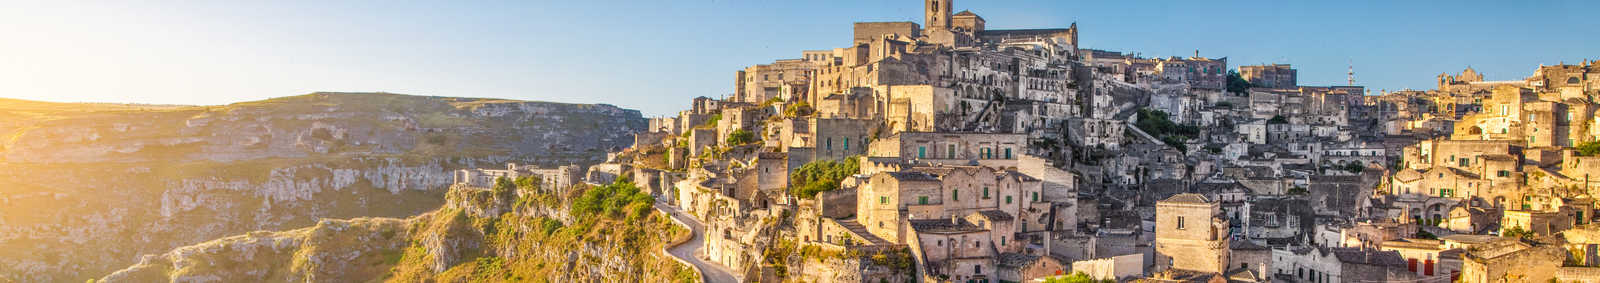 Panoramic view of the ancient town of Matera